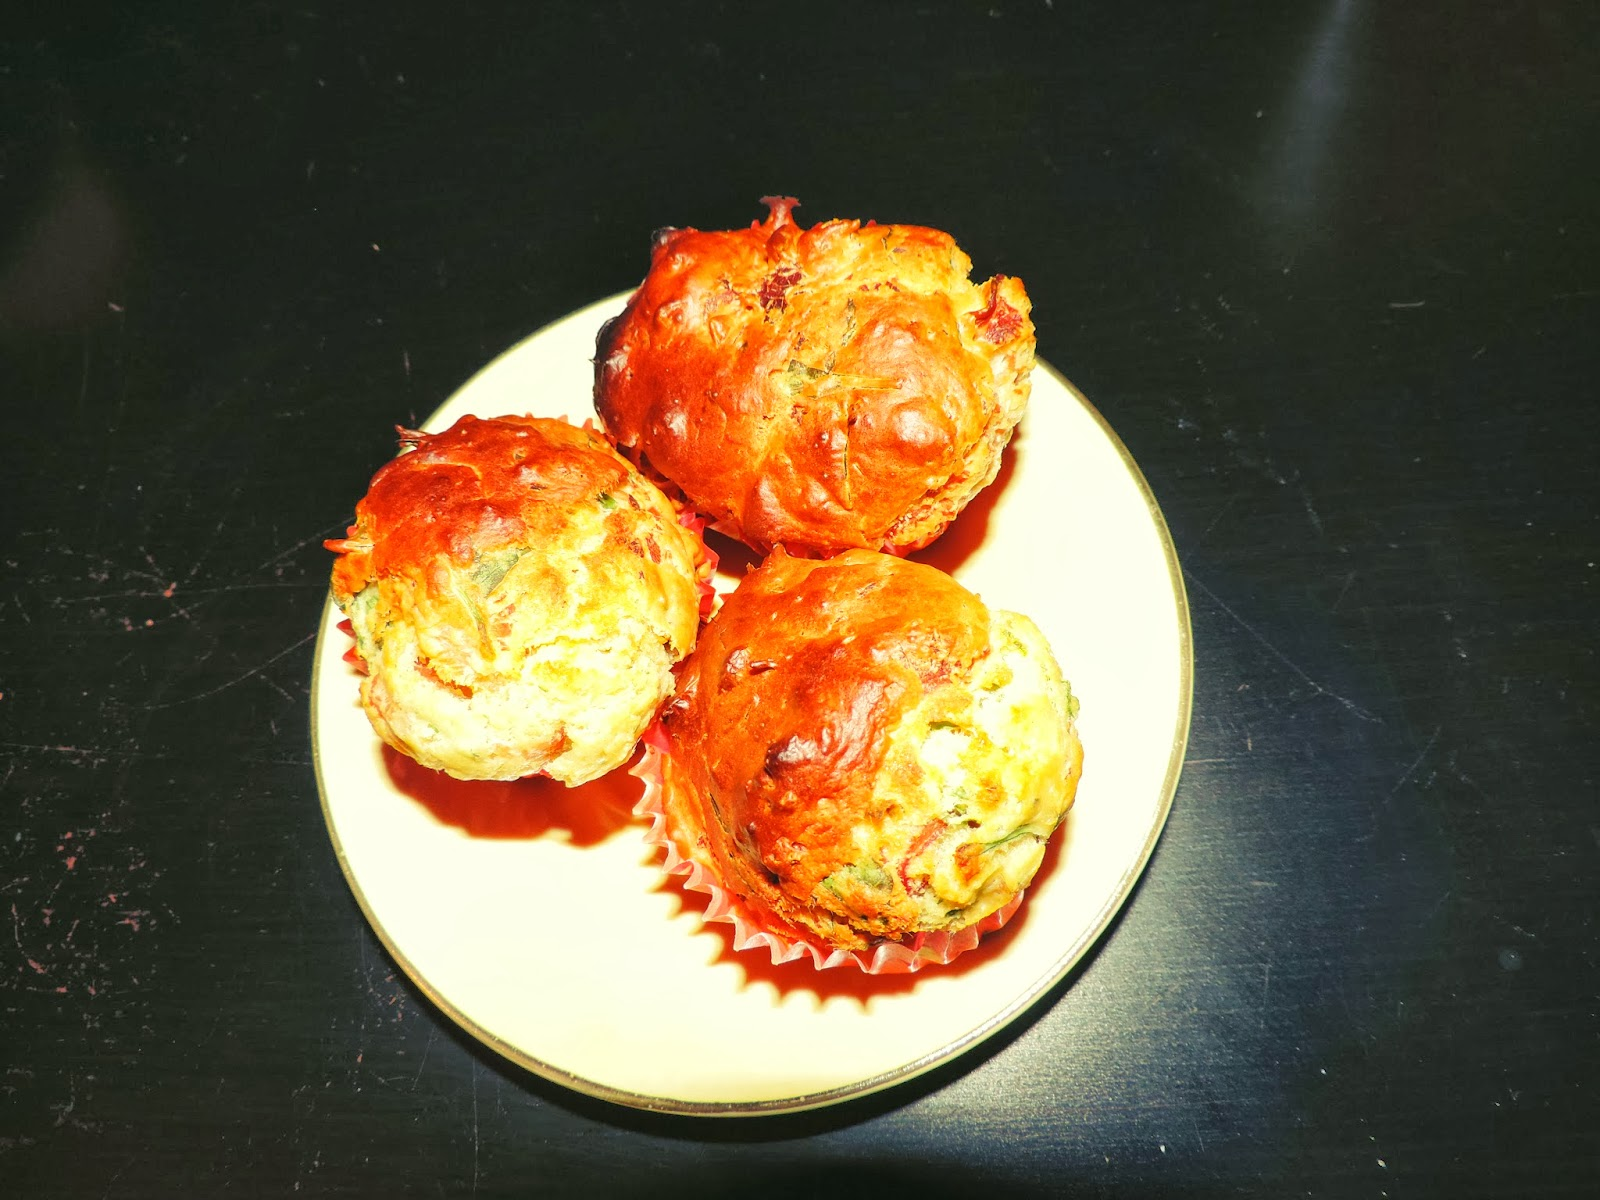 http://mynameisgeorges.blogspot.com/2014/02/gourmandise-5-muffins-parmesan-roquette.html